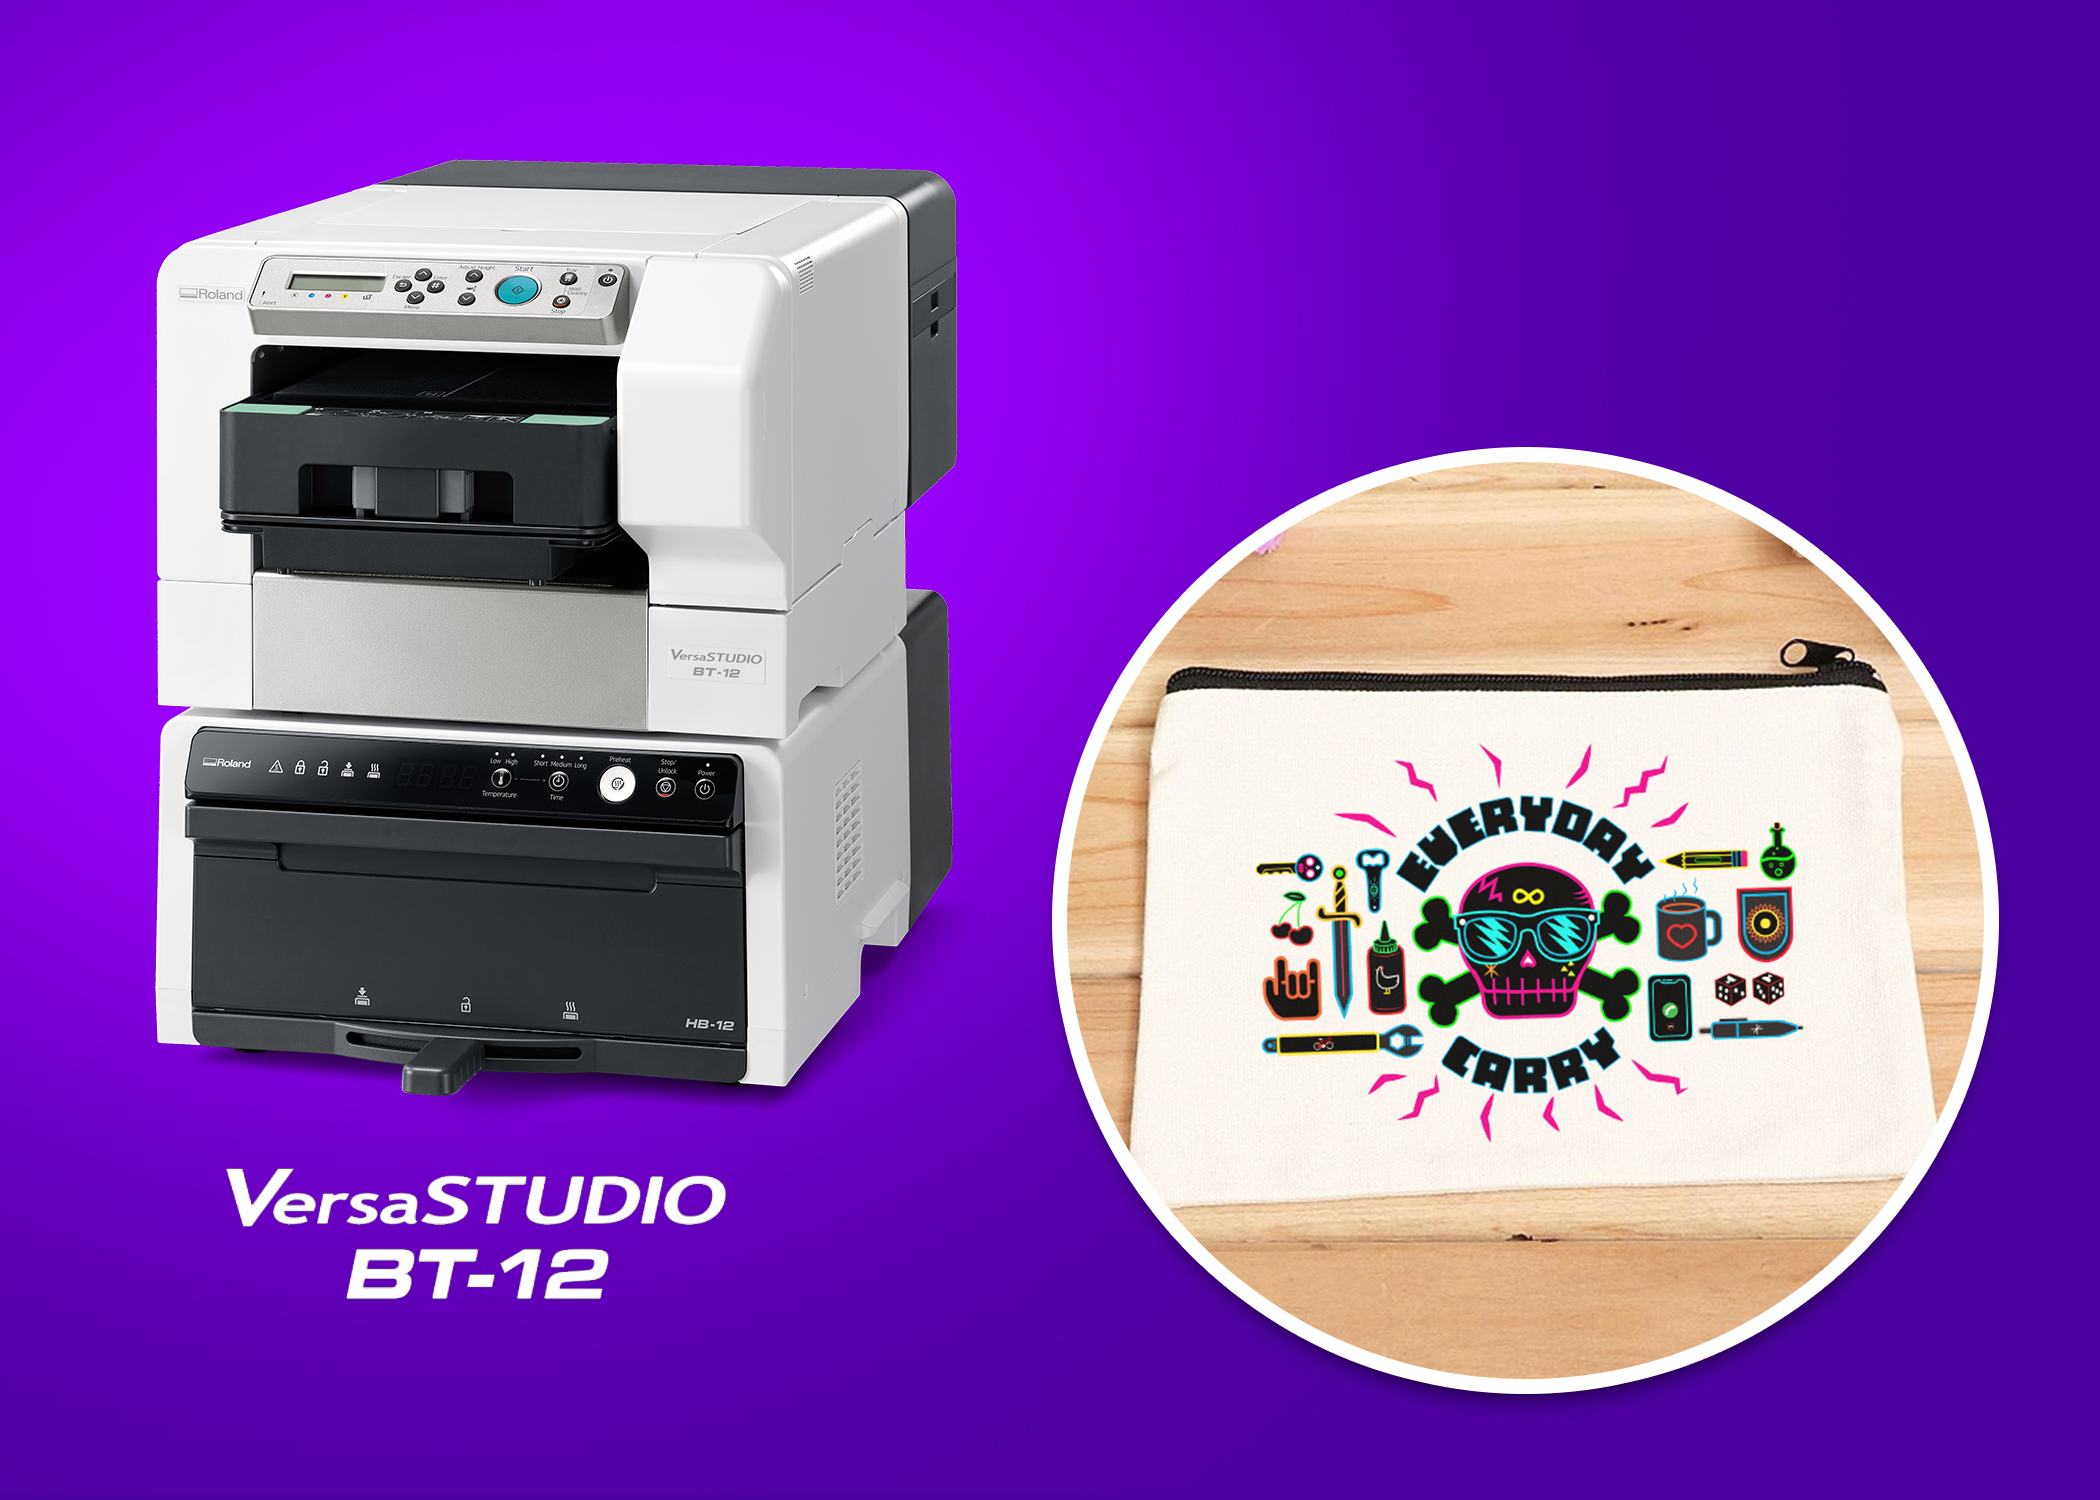 Roland DGA's VersaSTUDIO BT-12 direct-to-garment printer and Adobe MAX 2020 customized zippered pouch giveaway